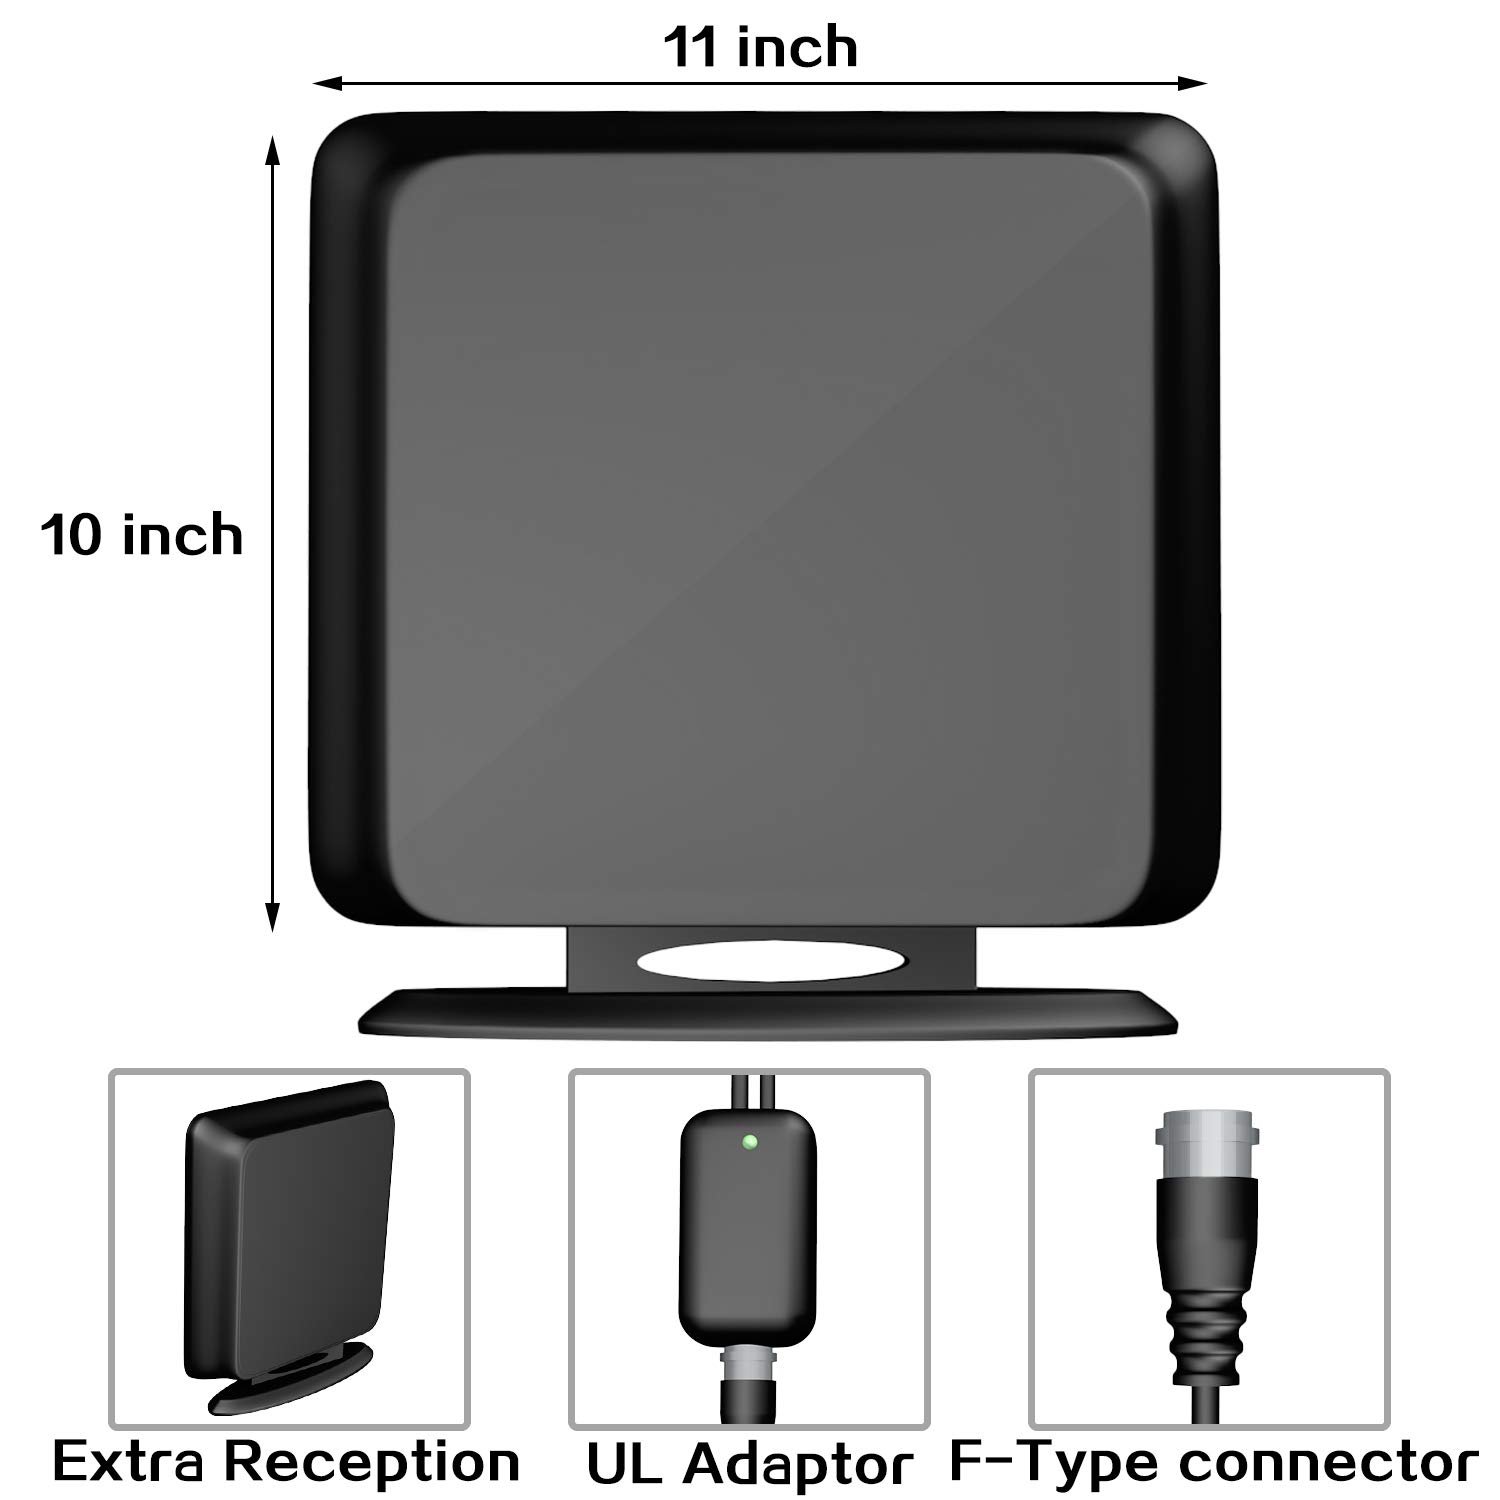 138+Miles Indoor HD Digital TV Antenna Amplified HDTV Antenna High Reception Amplifier Antenna for TV Signals for All Older TVs Reception 4K//VHF//UHF//1080P Free Channels 13ft Coax